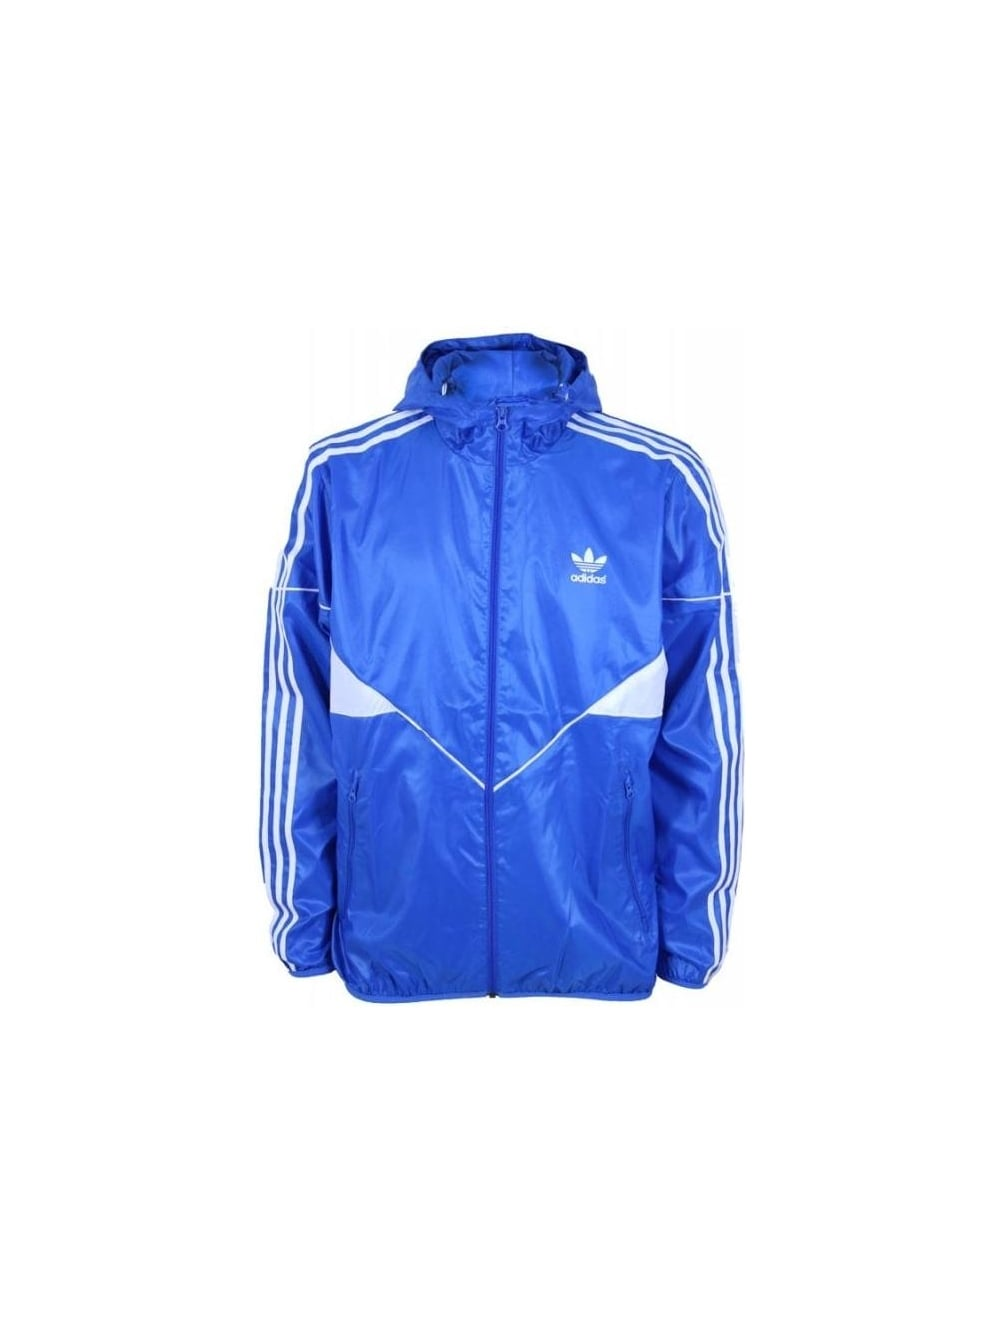 7ed0b740b Adidas Colorado Windbreaker in Bluebird - Northern Threads